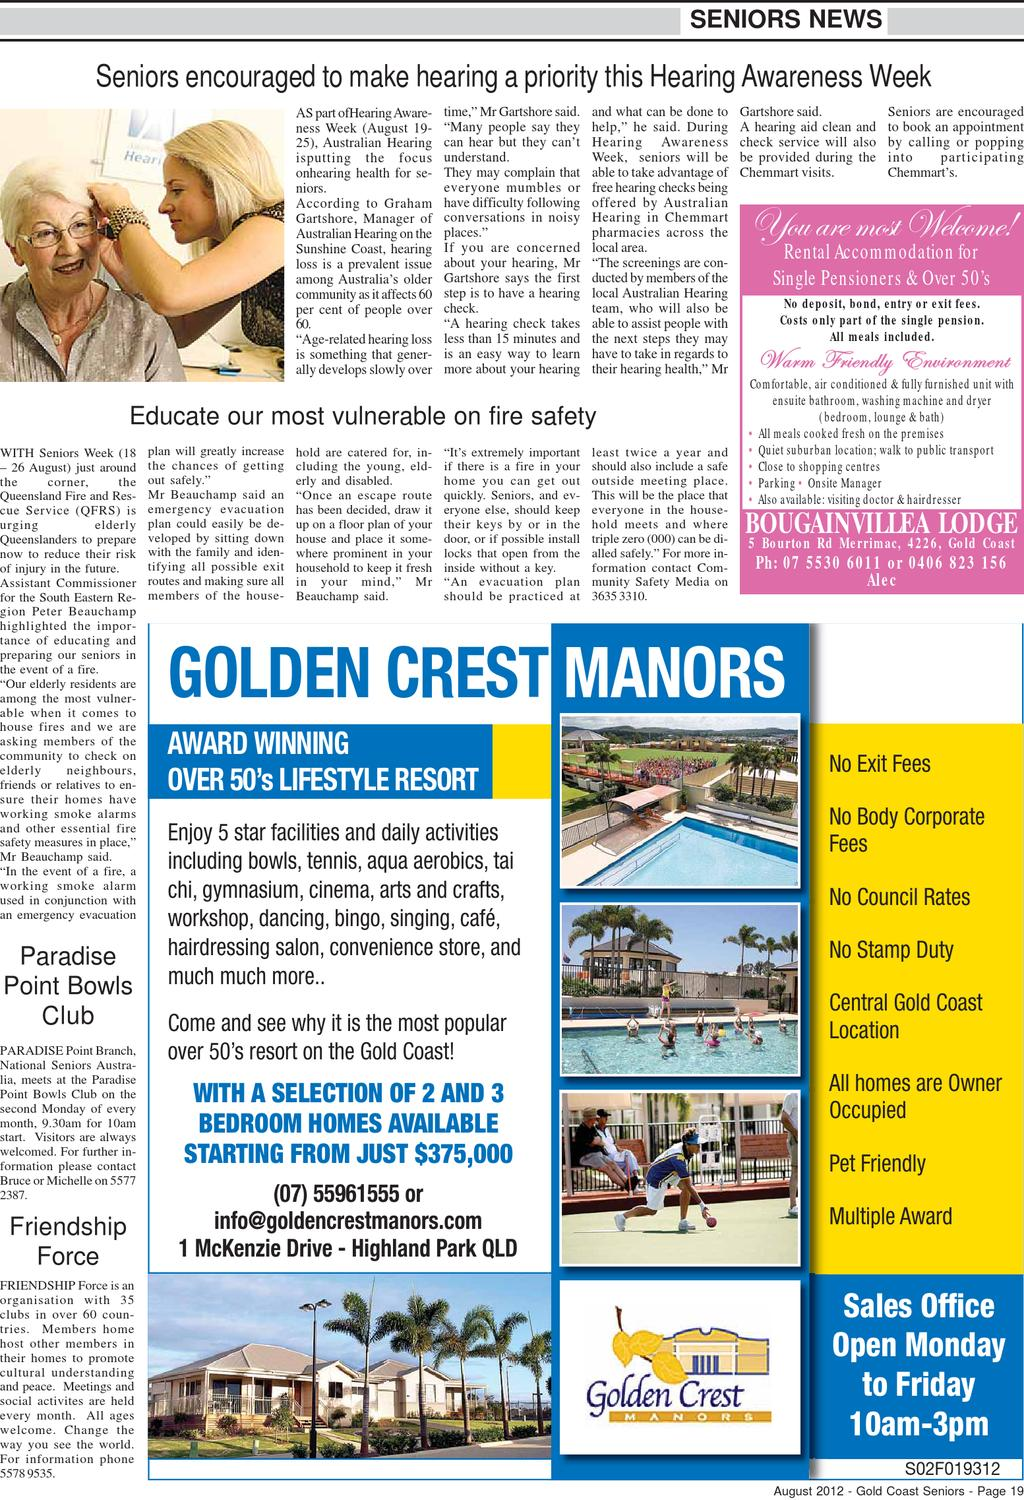 Gold Coast Tweed Seniors Newspaper August 2012 by Seniors